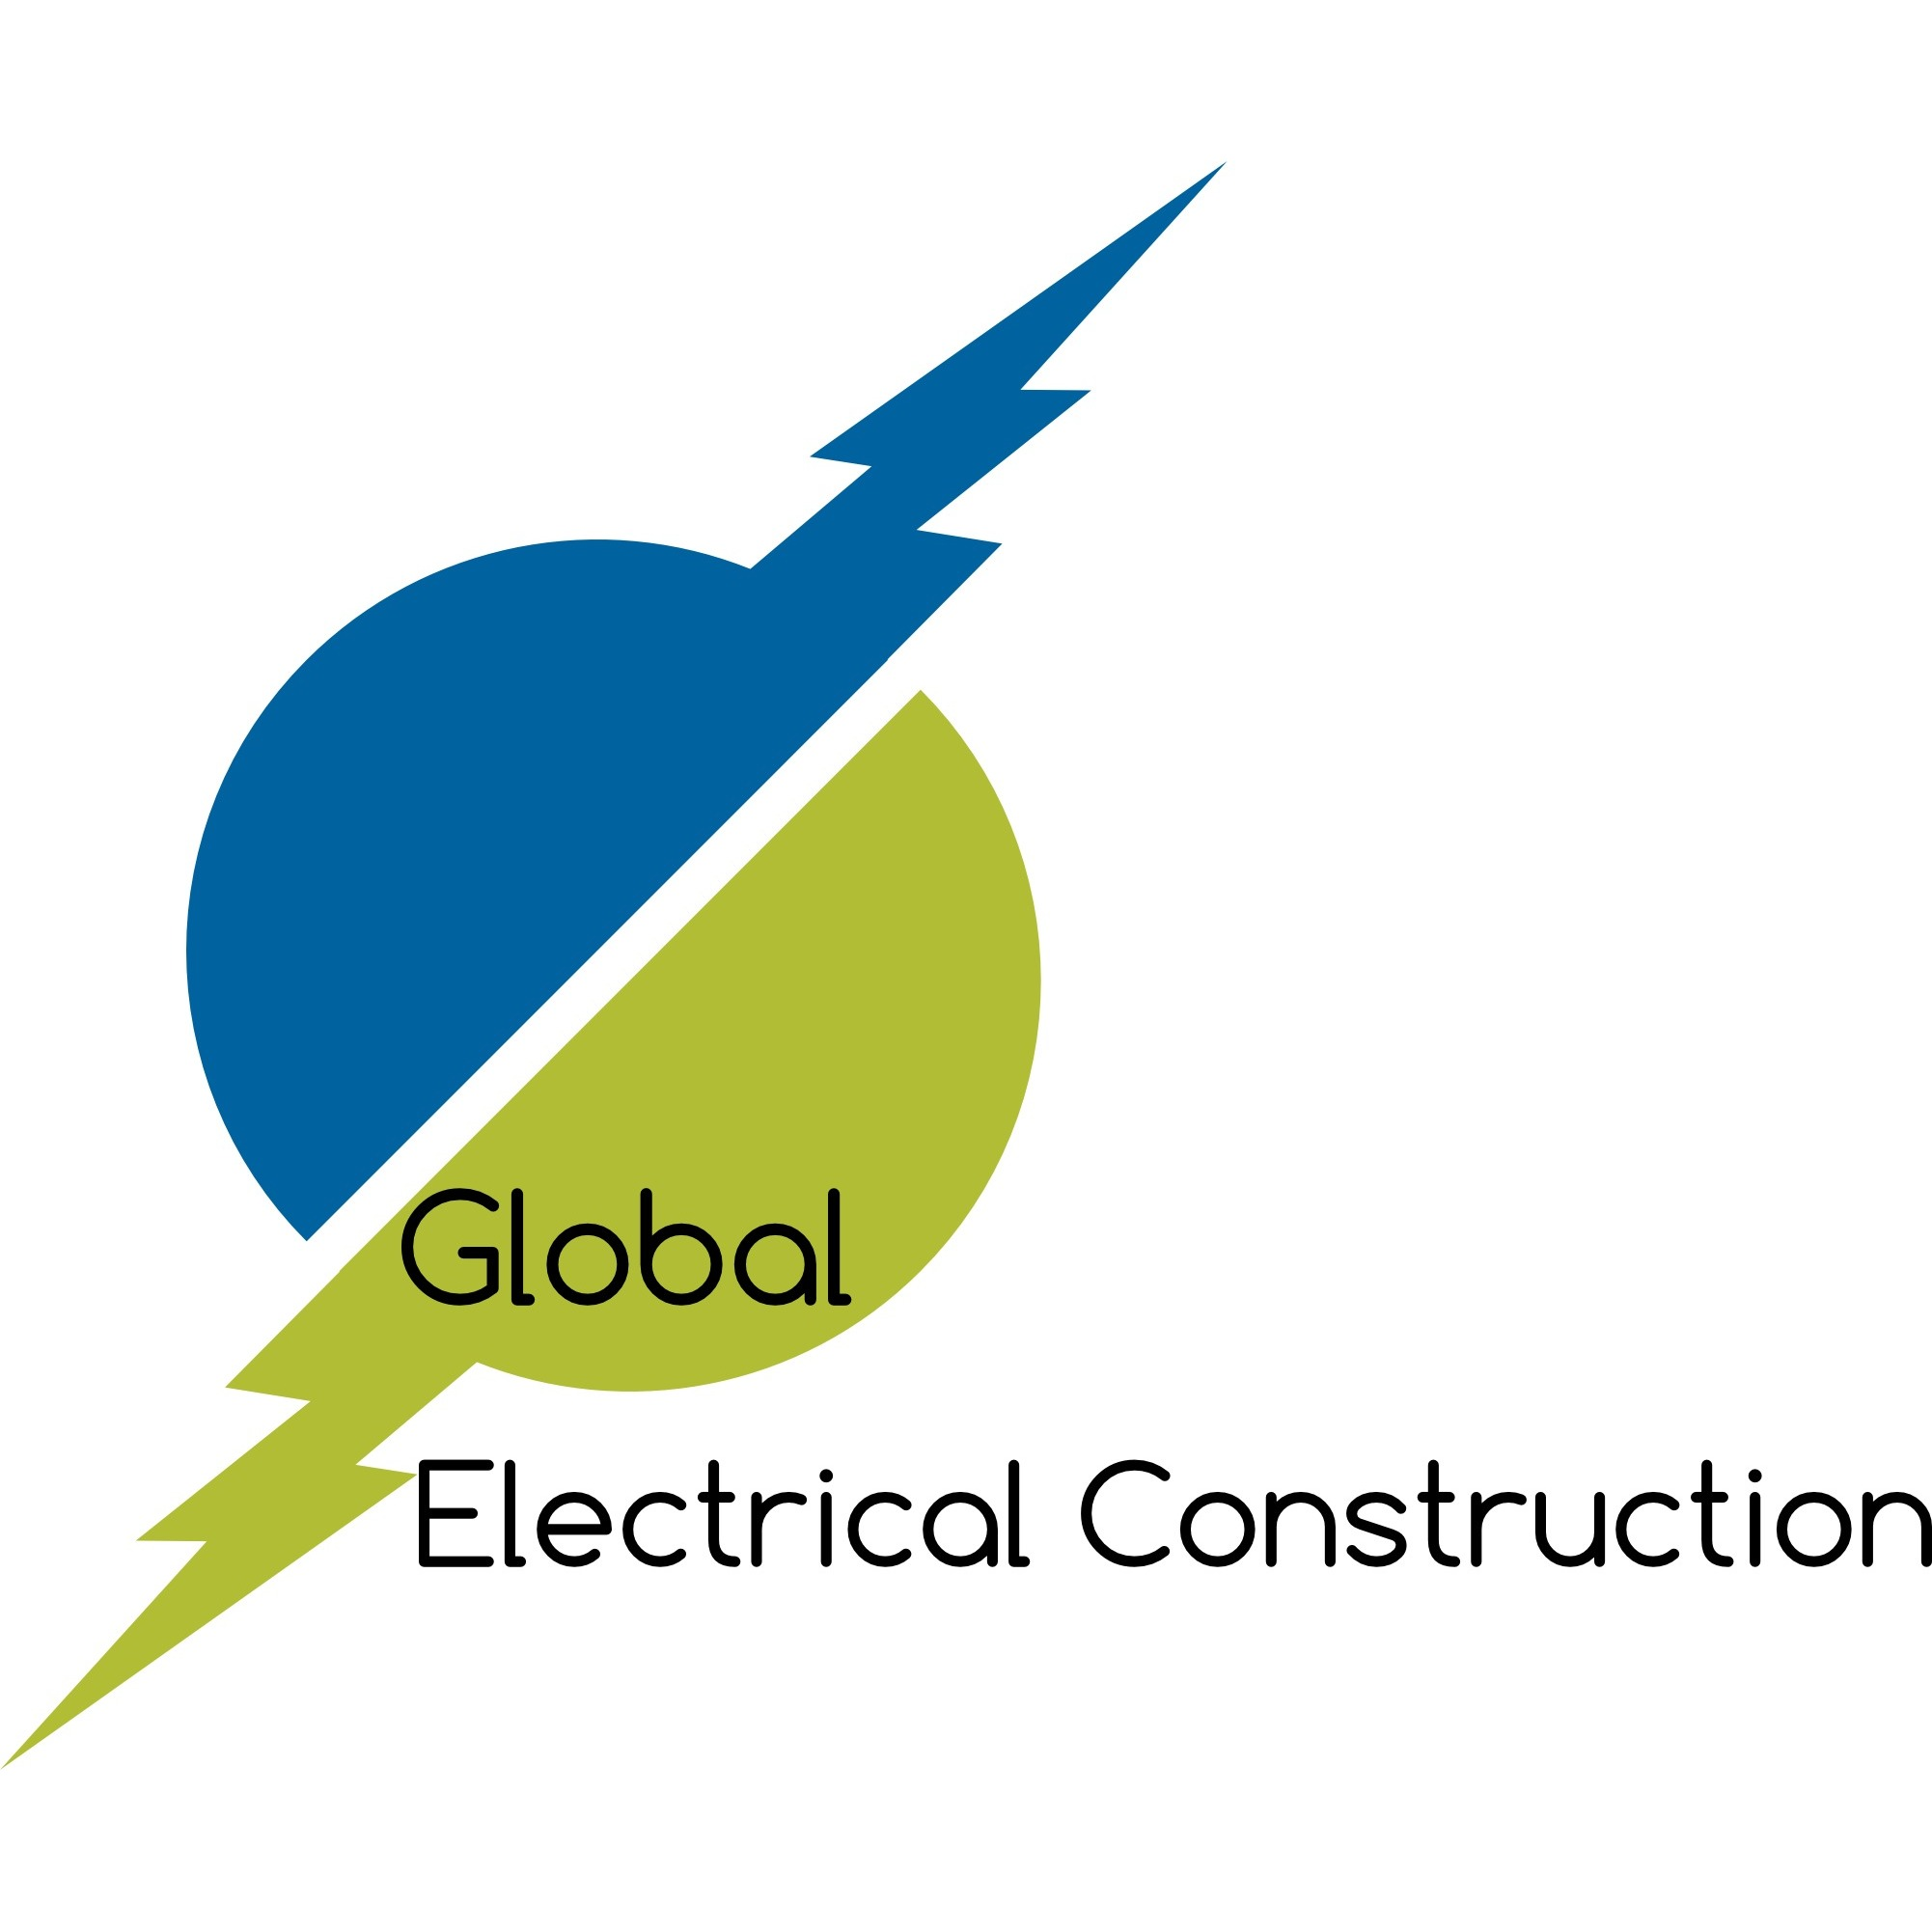 Global Electrical Construction